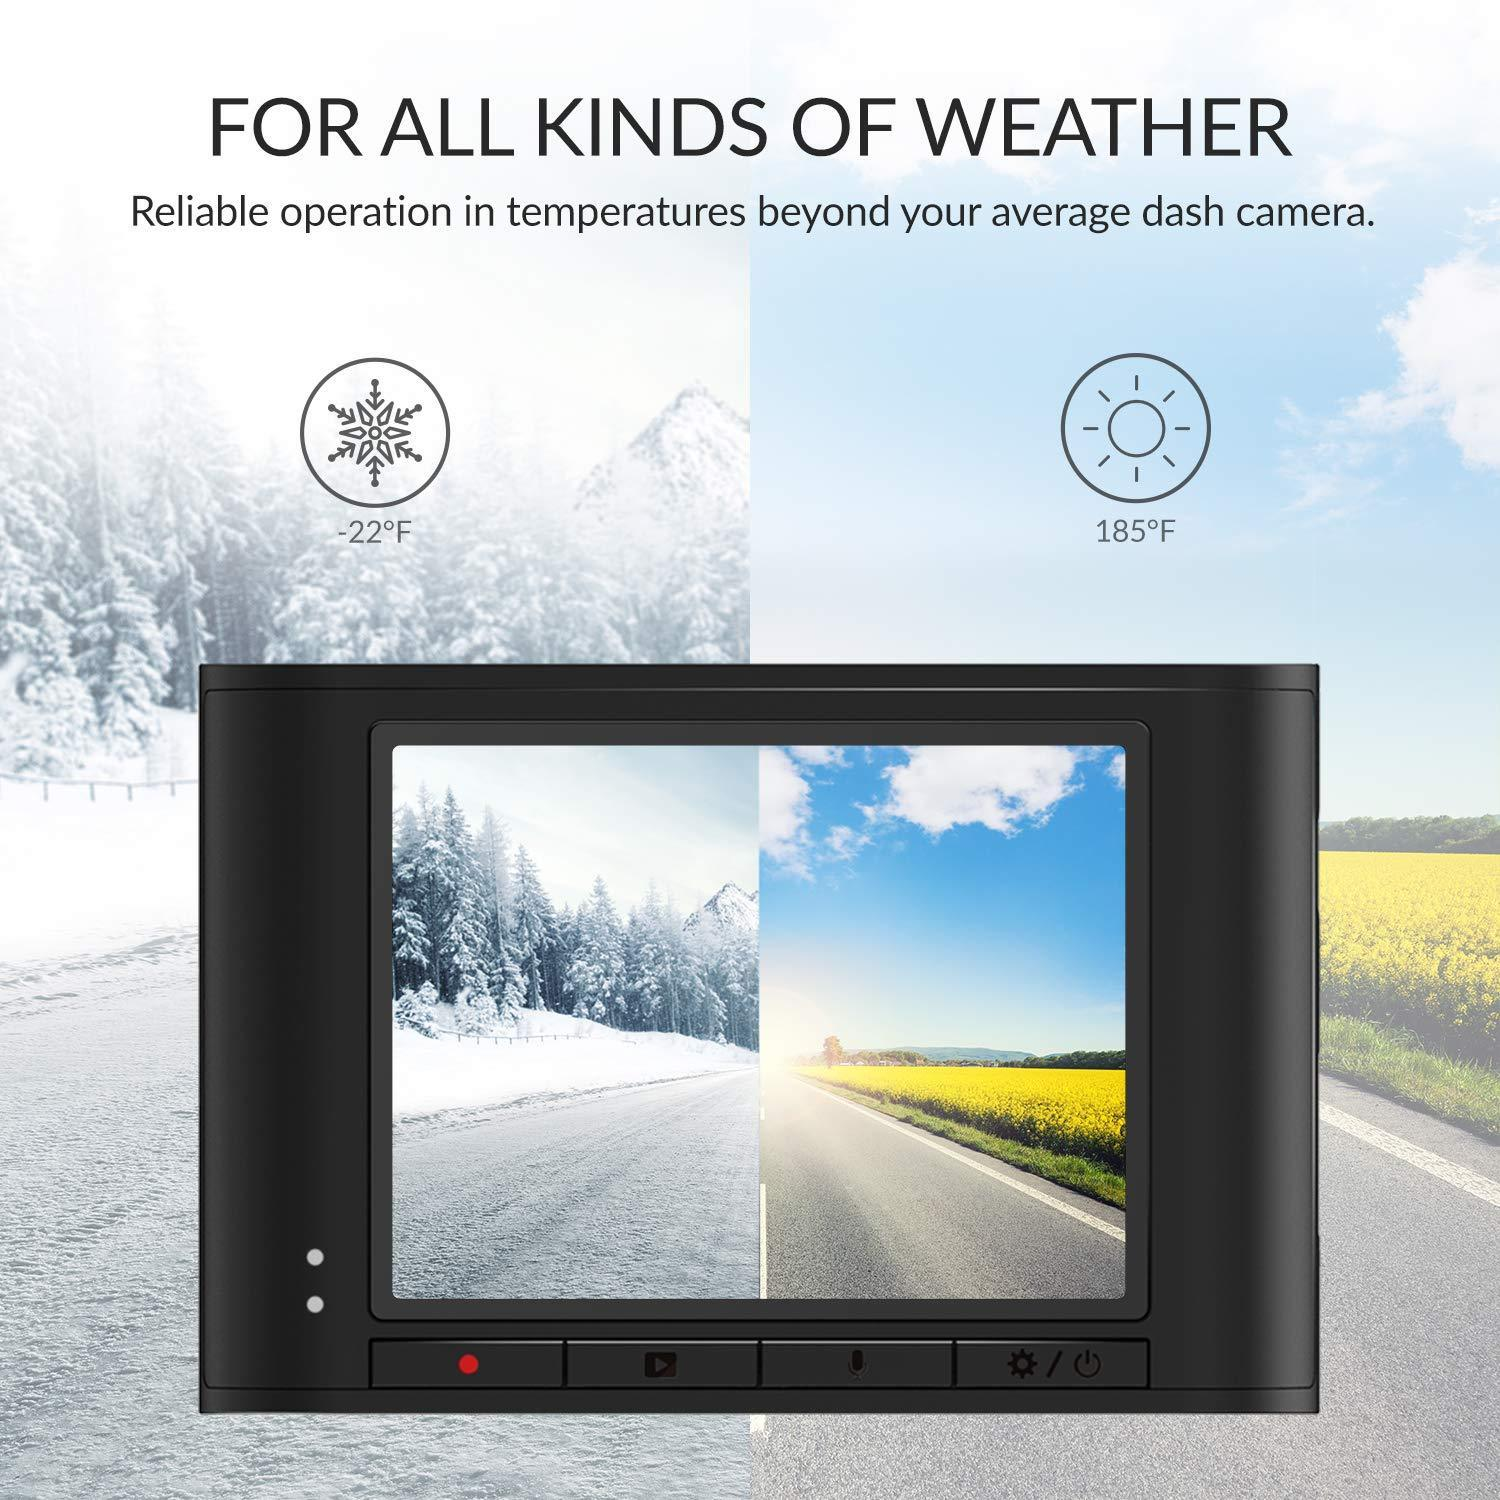 For all kinds of weather - Reliable operation temperatures beyond your average dash camera